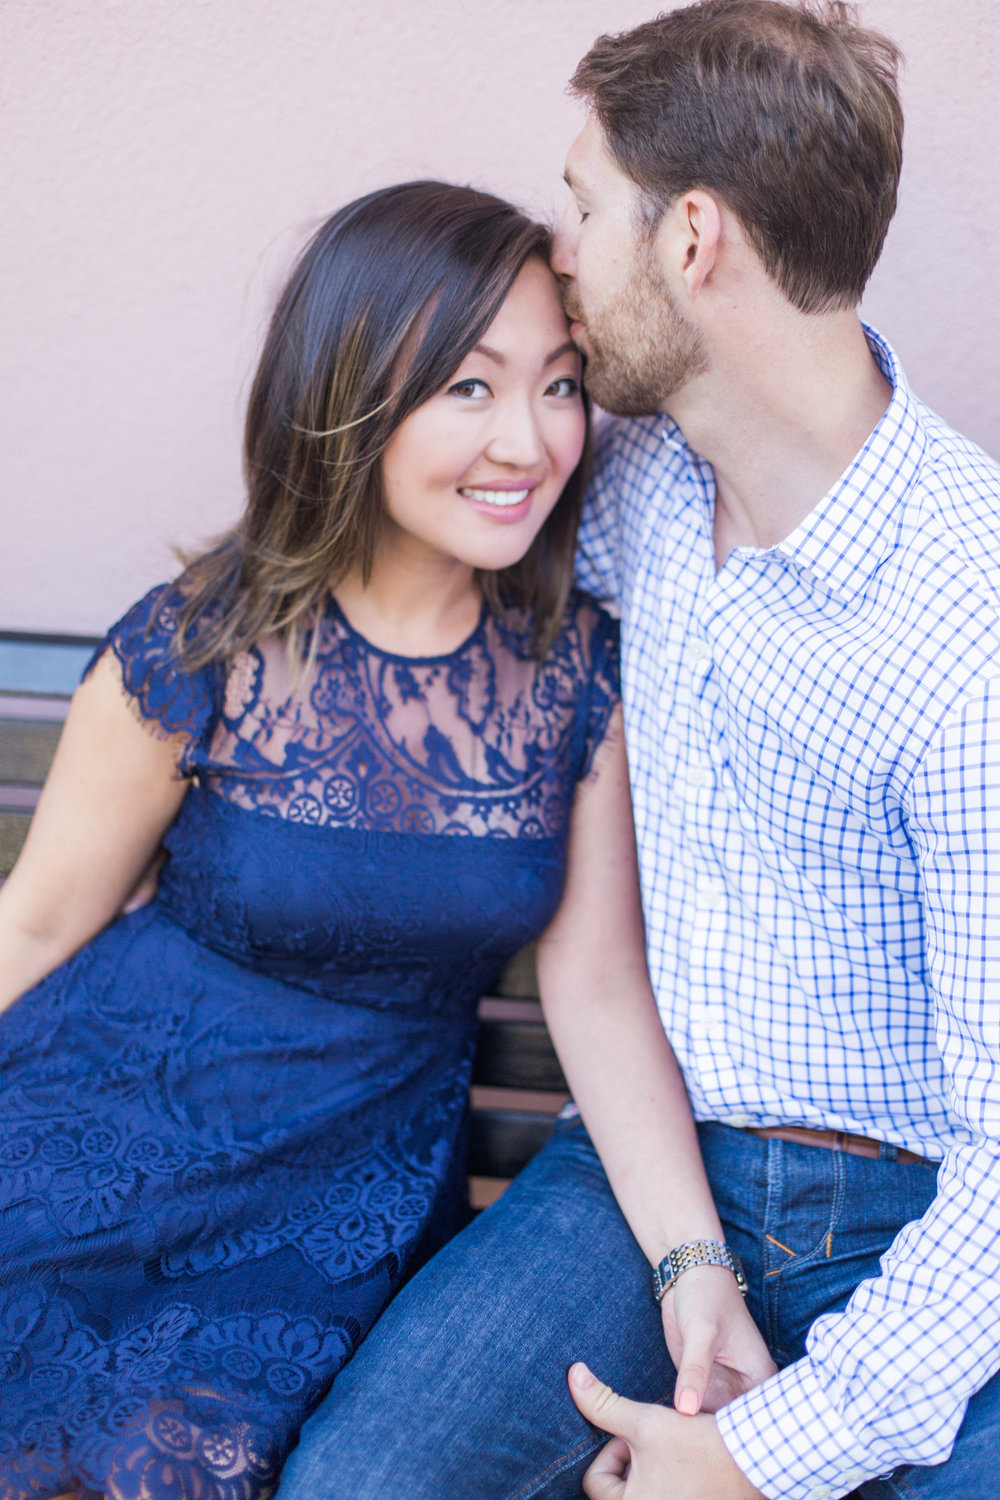 Mirrormirror-muah-engagment-airbrush-makeup-charleston-hair-the-click-chick-photography-21.jpg